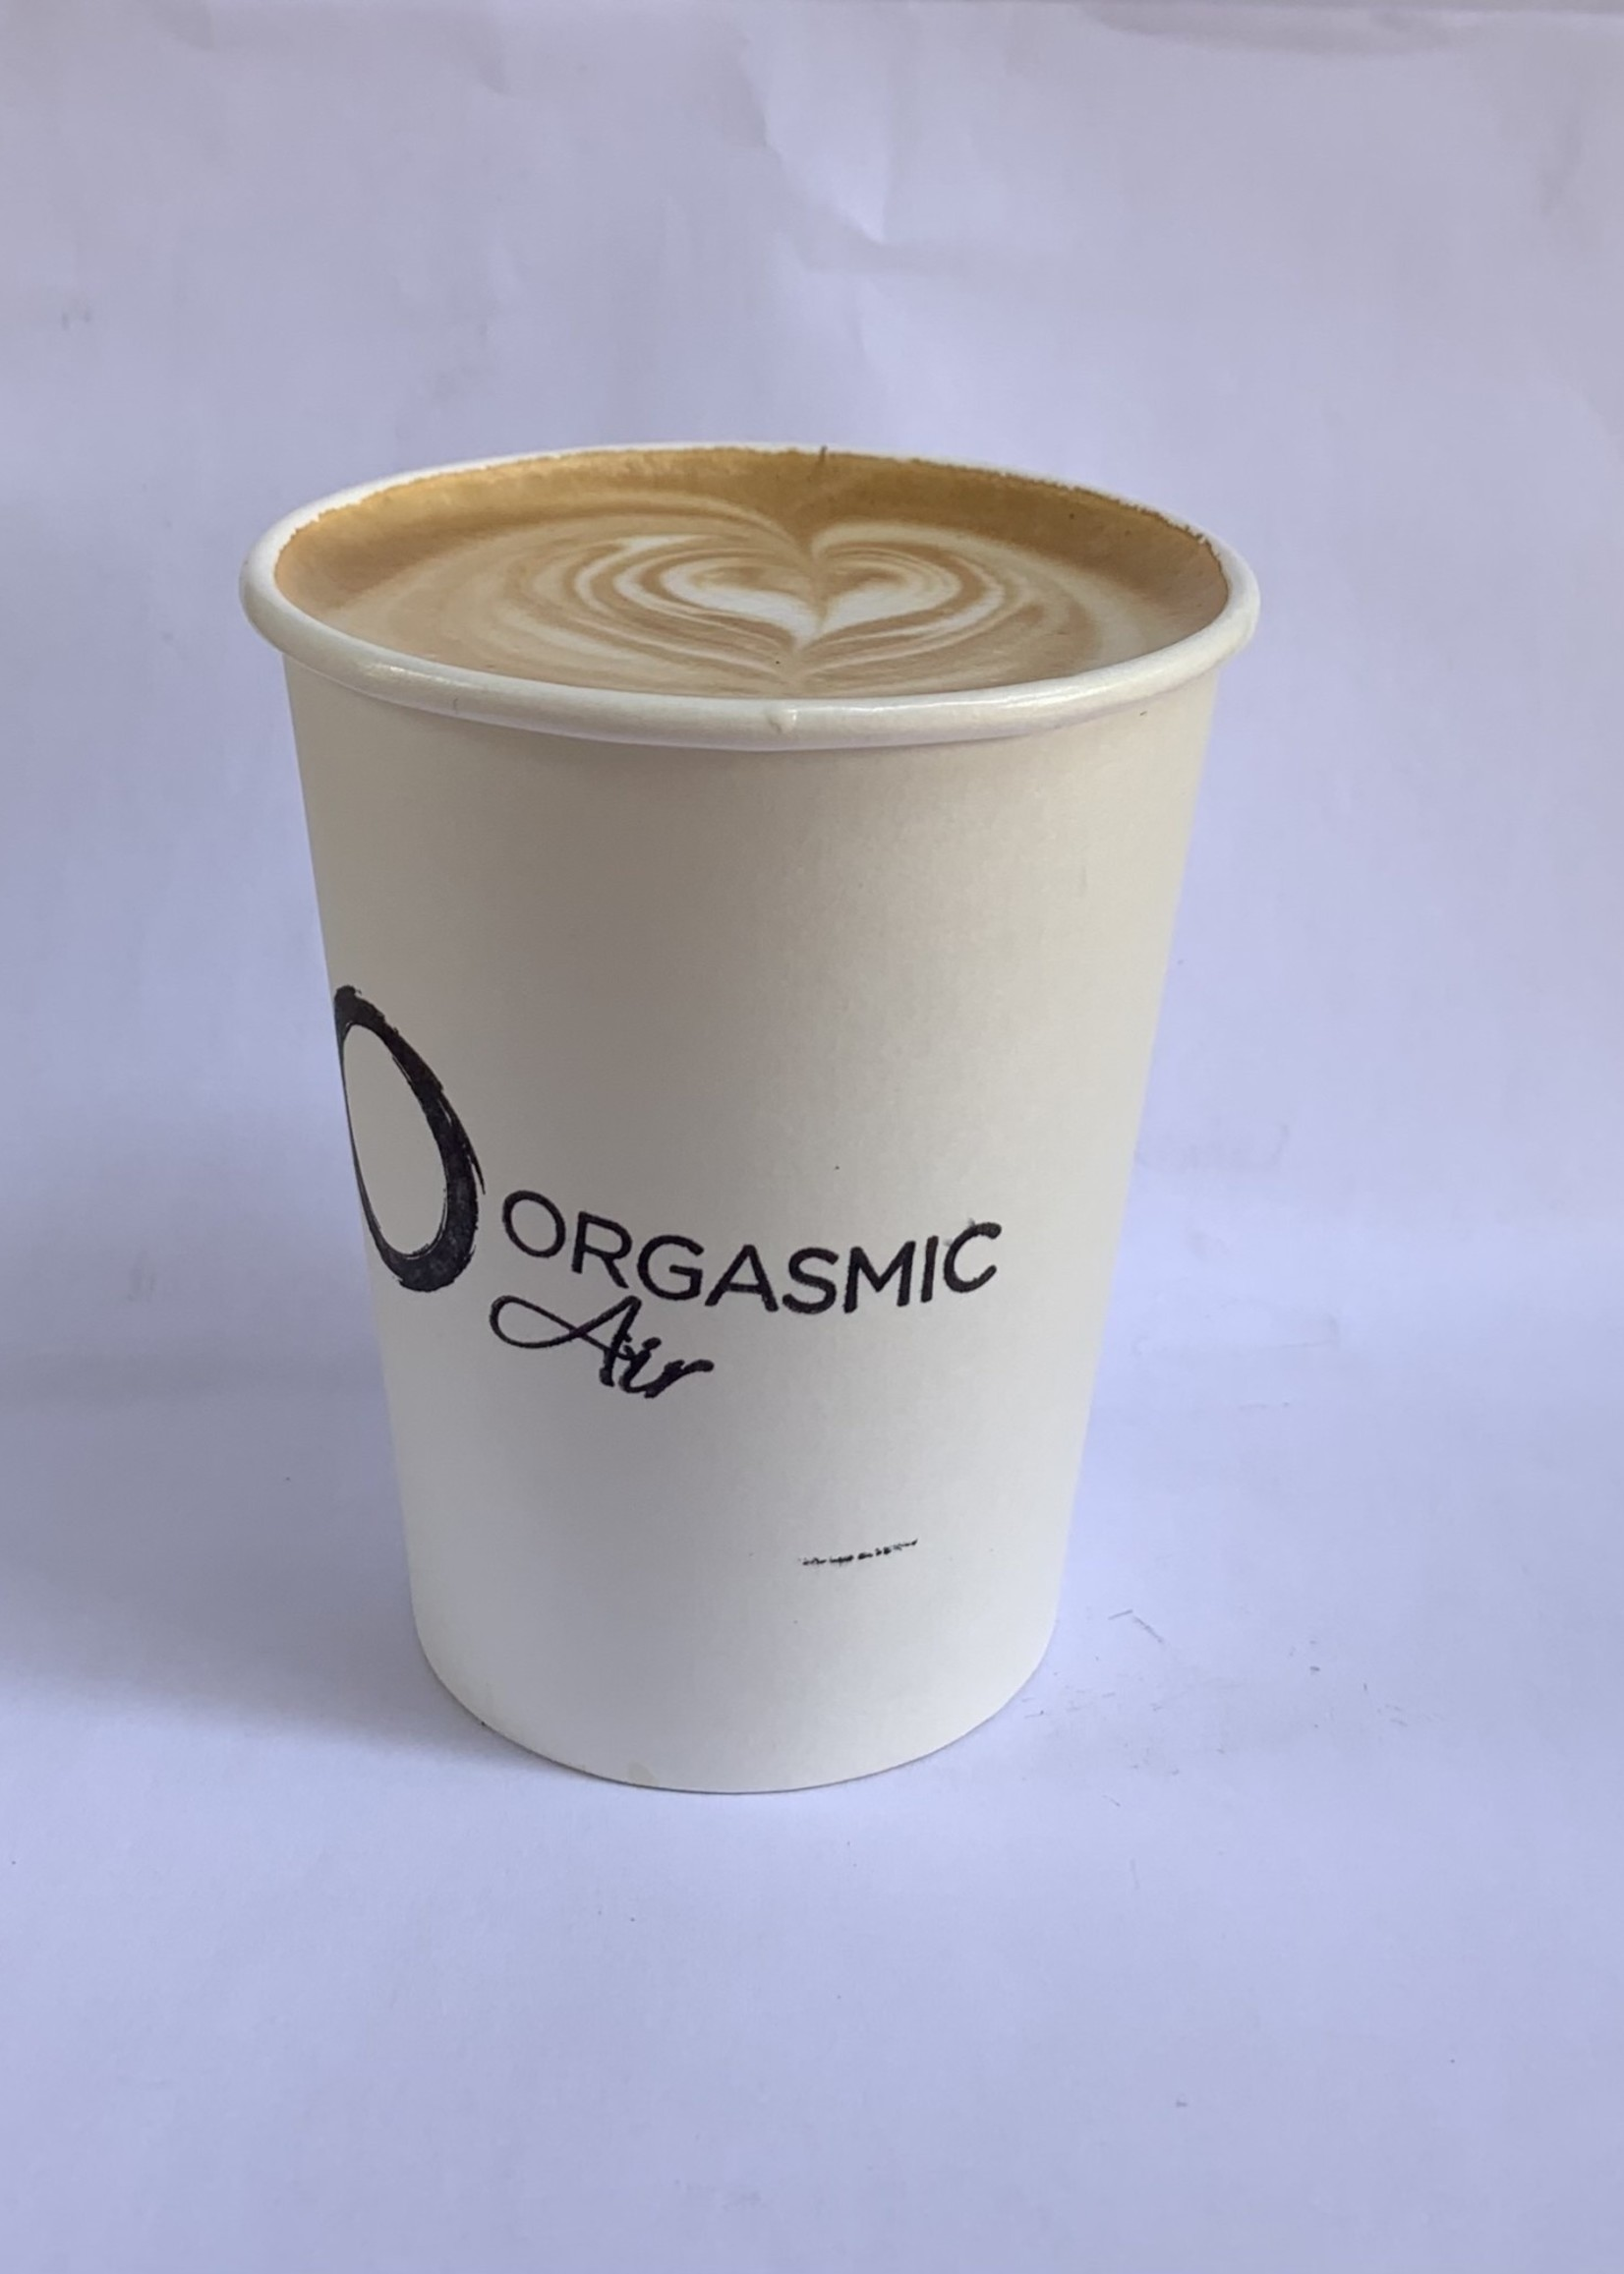 Organic & Air CBD infused double cappuccino